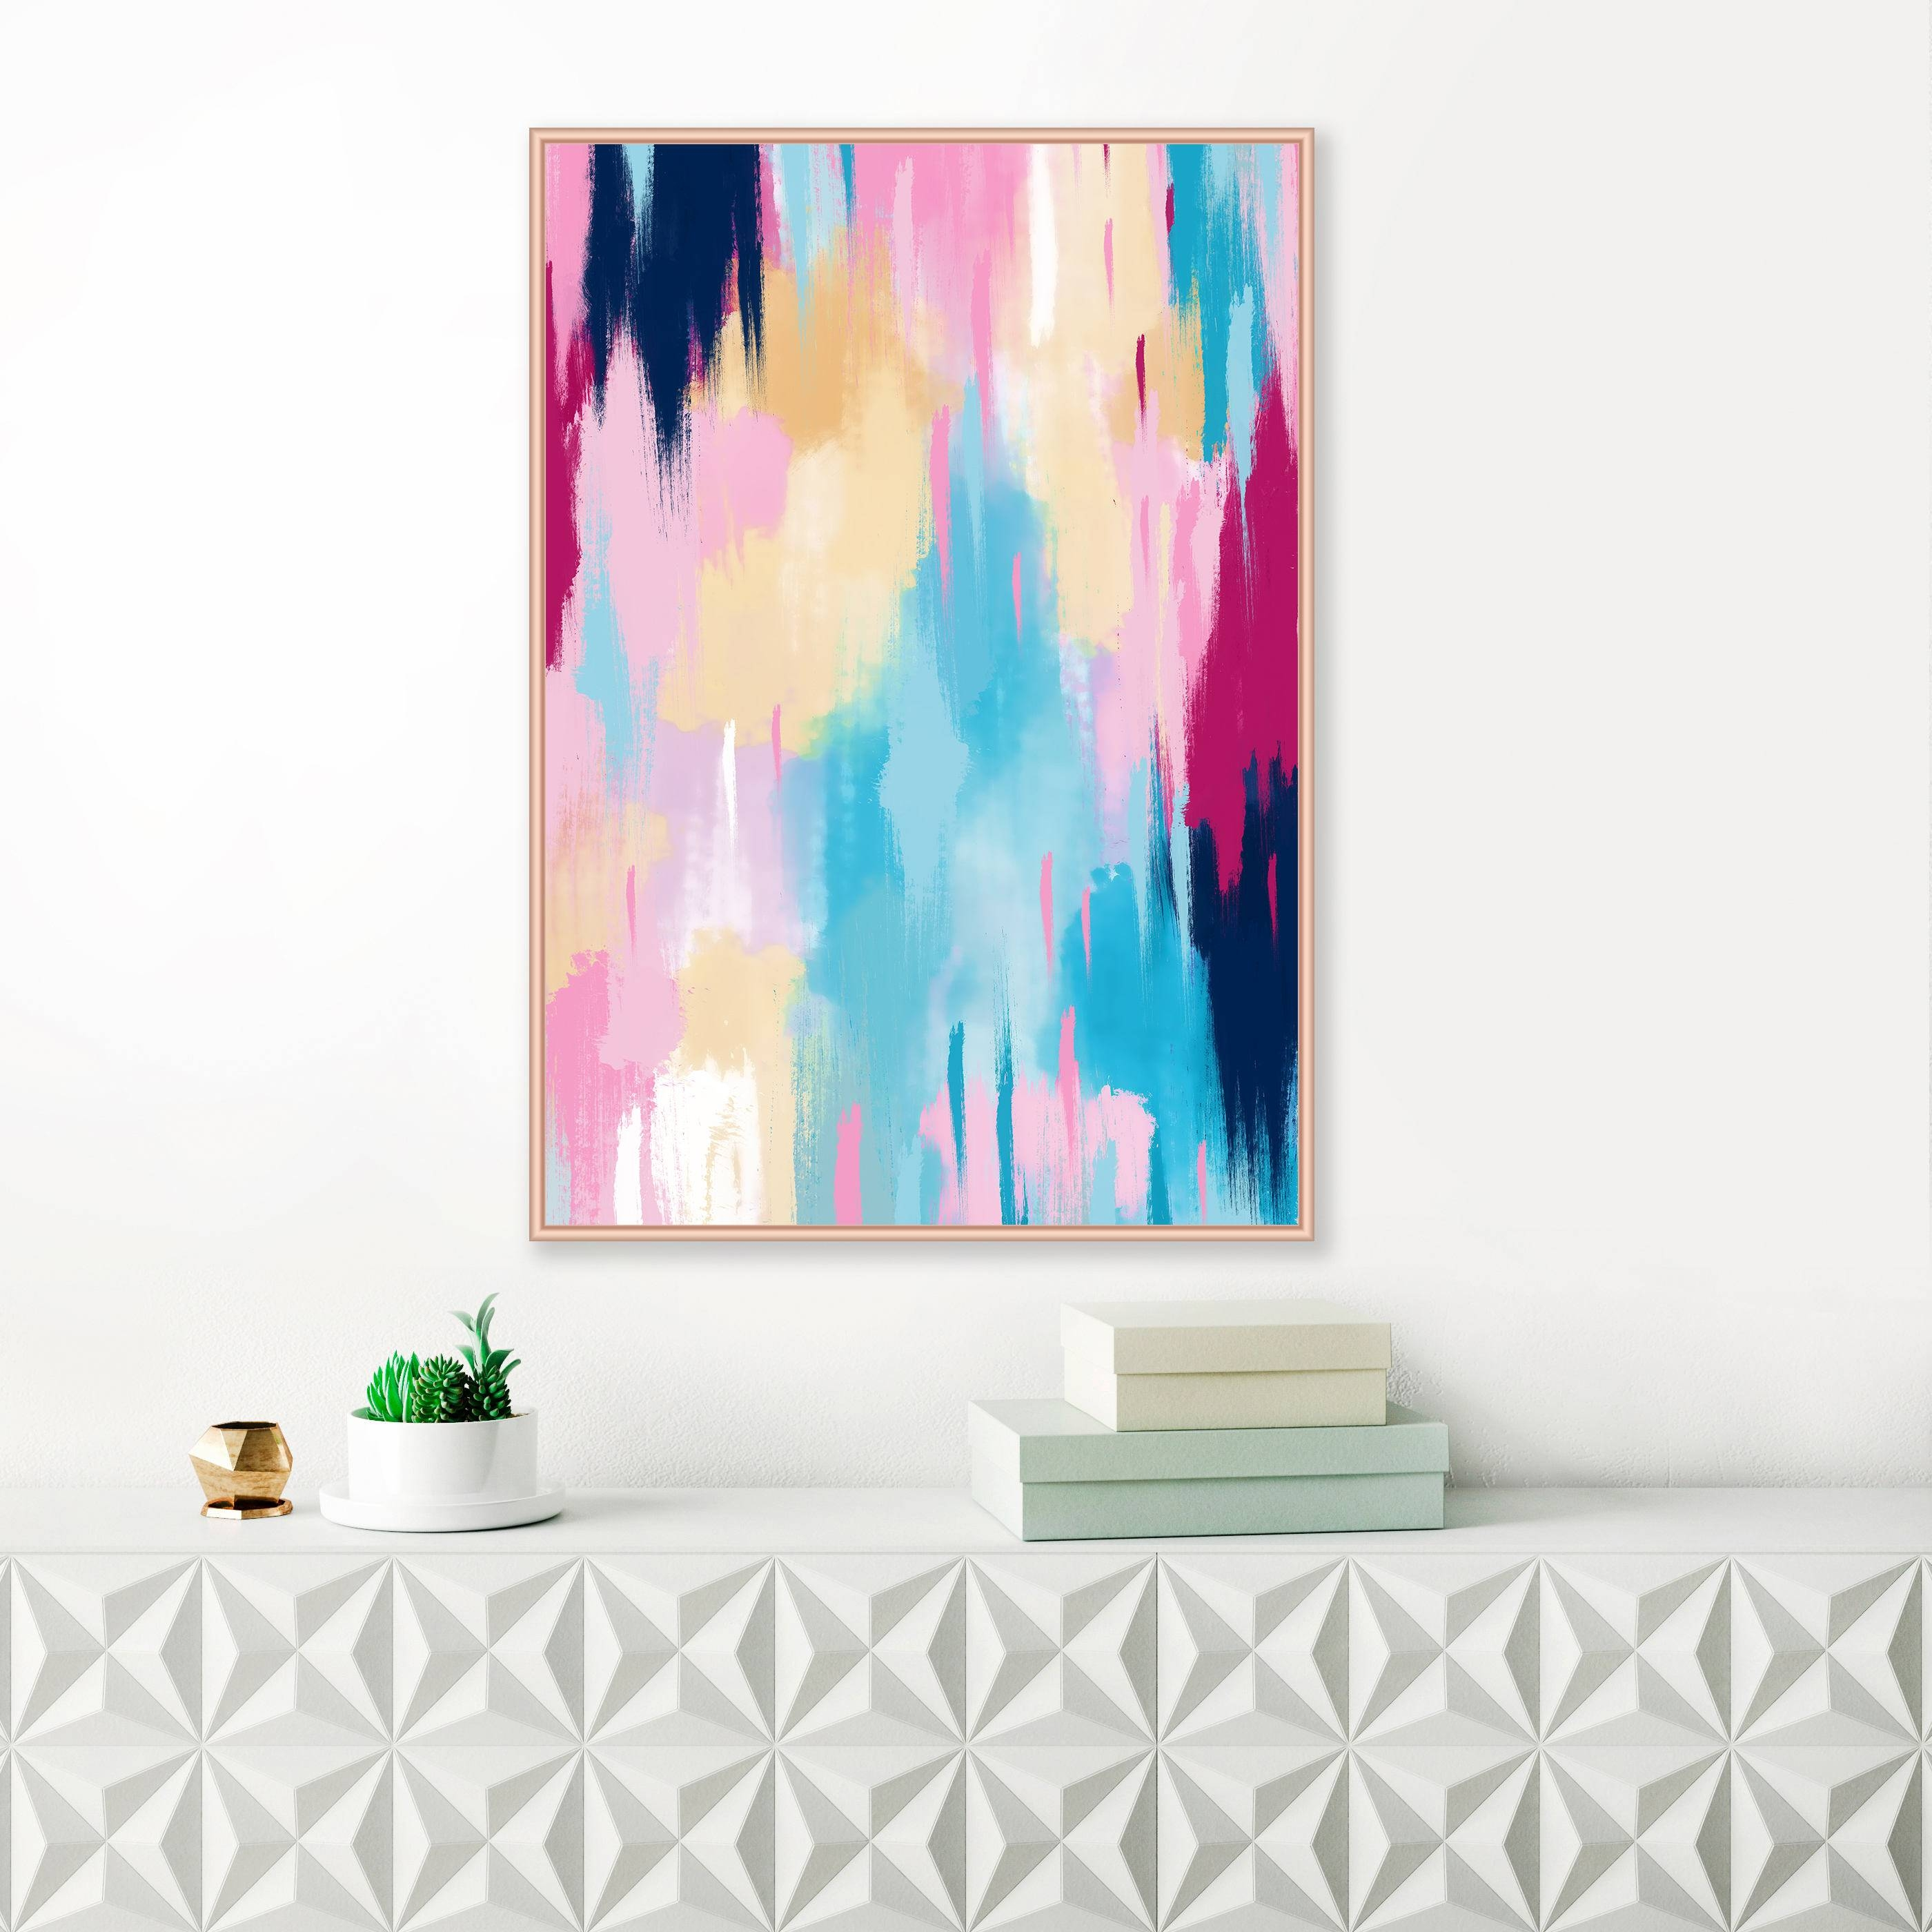 Pink And Blue Abstract Art, Modern Art Print, Extra Large Print Inside Most Up To Date Extra Large Wall Art Prints (View 16 of 20)